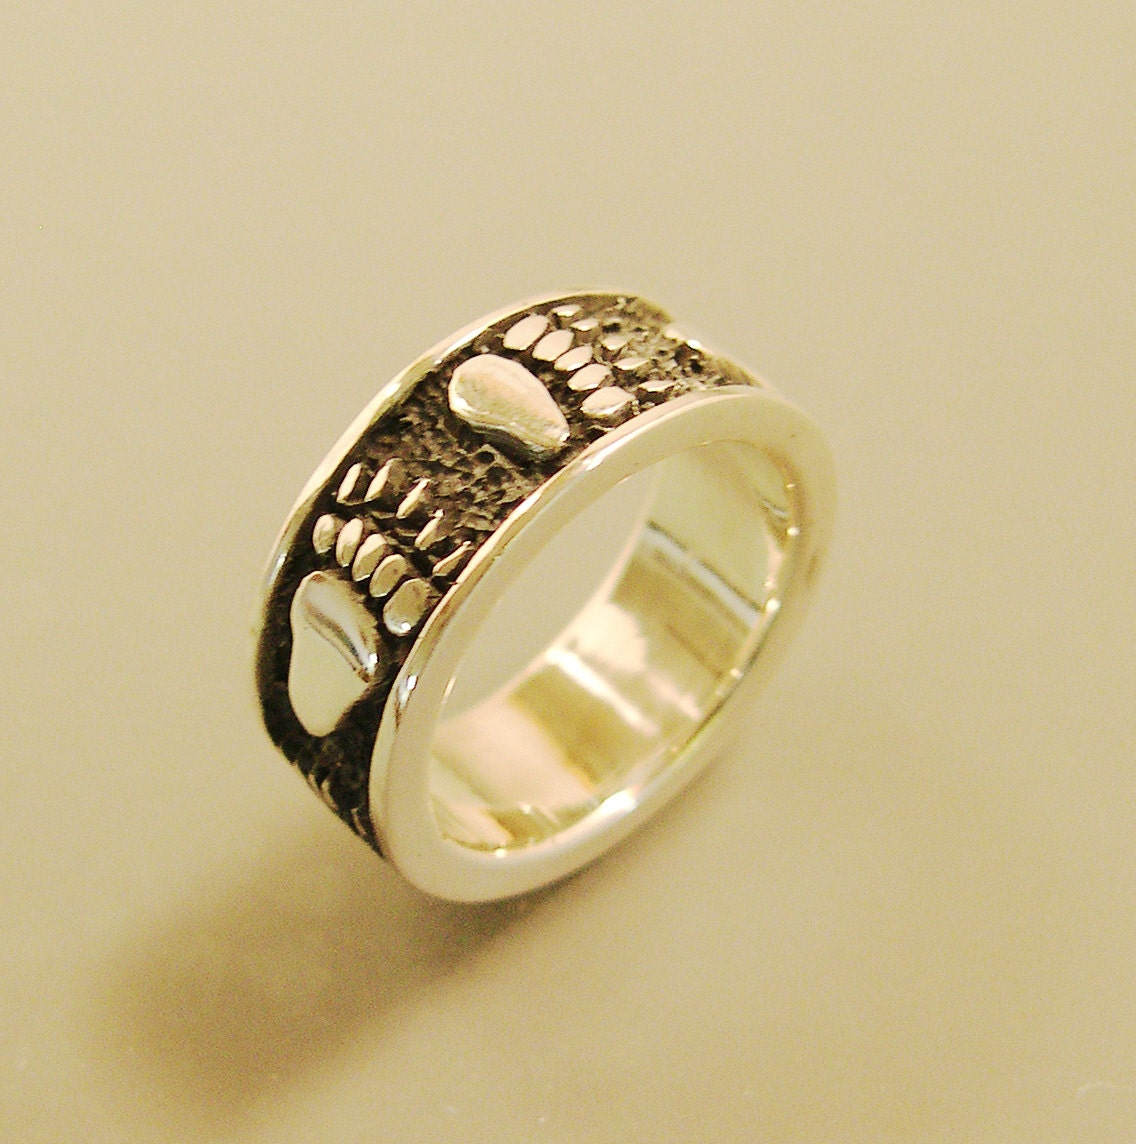 Grizzly Bear Track Ring Grizzly Bear Wedding Band Grizzly